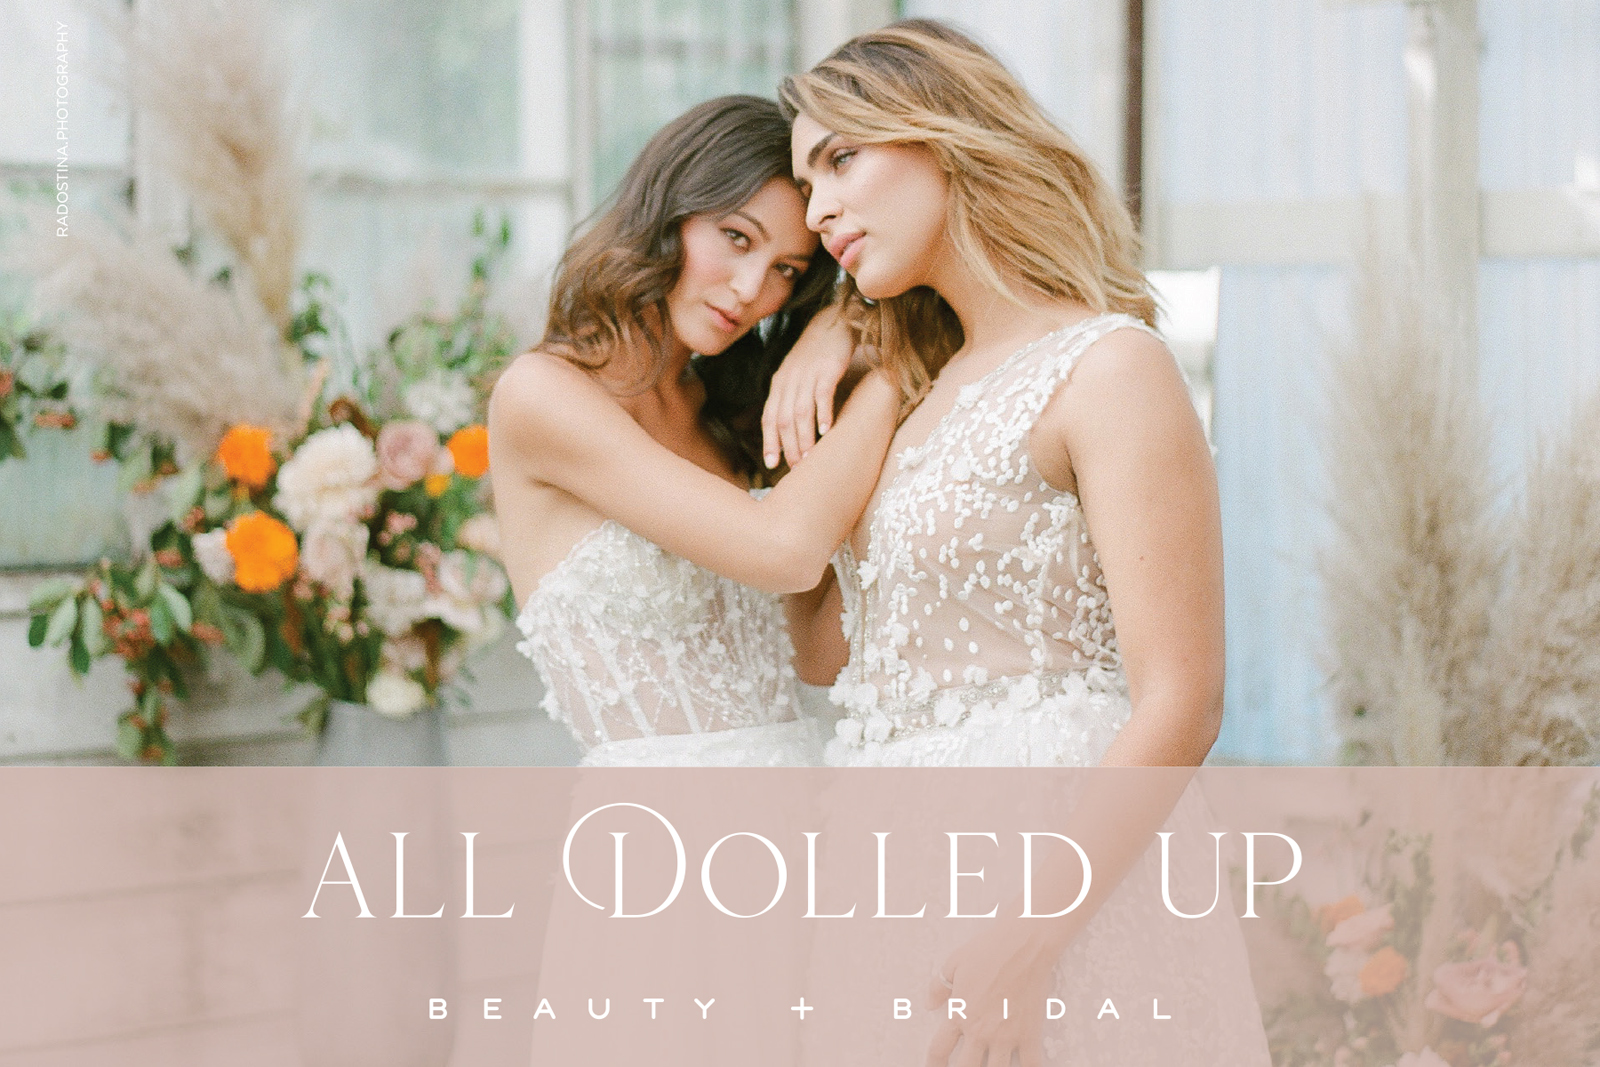 Real Weddings Magazine Special Offer Discount All Dolled Up Bridal + Beauty Hair Makeup Artist | Best Sacramento Tahoe Northern California Vendors